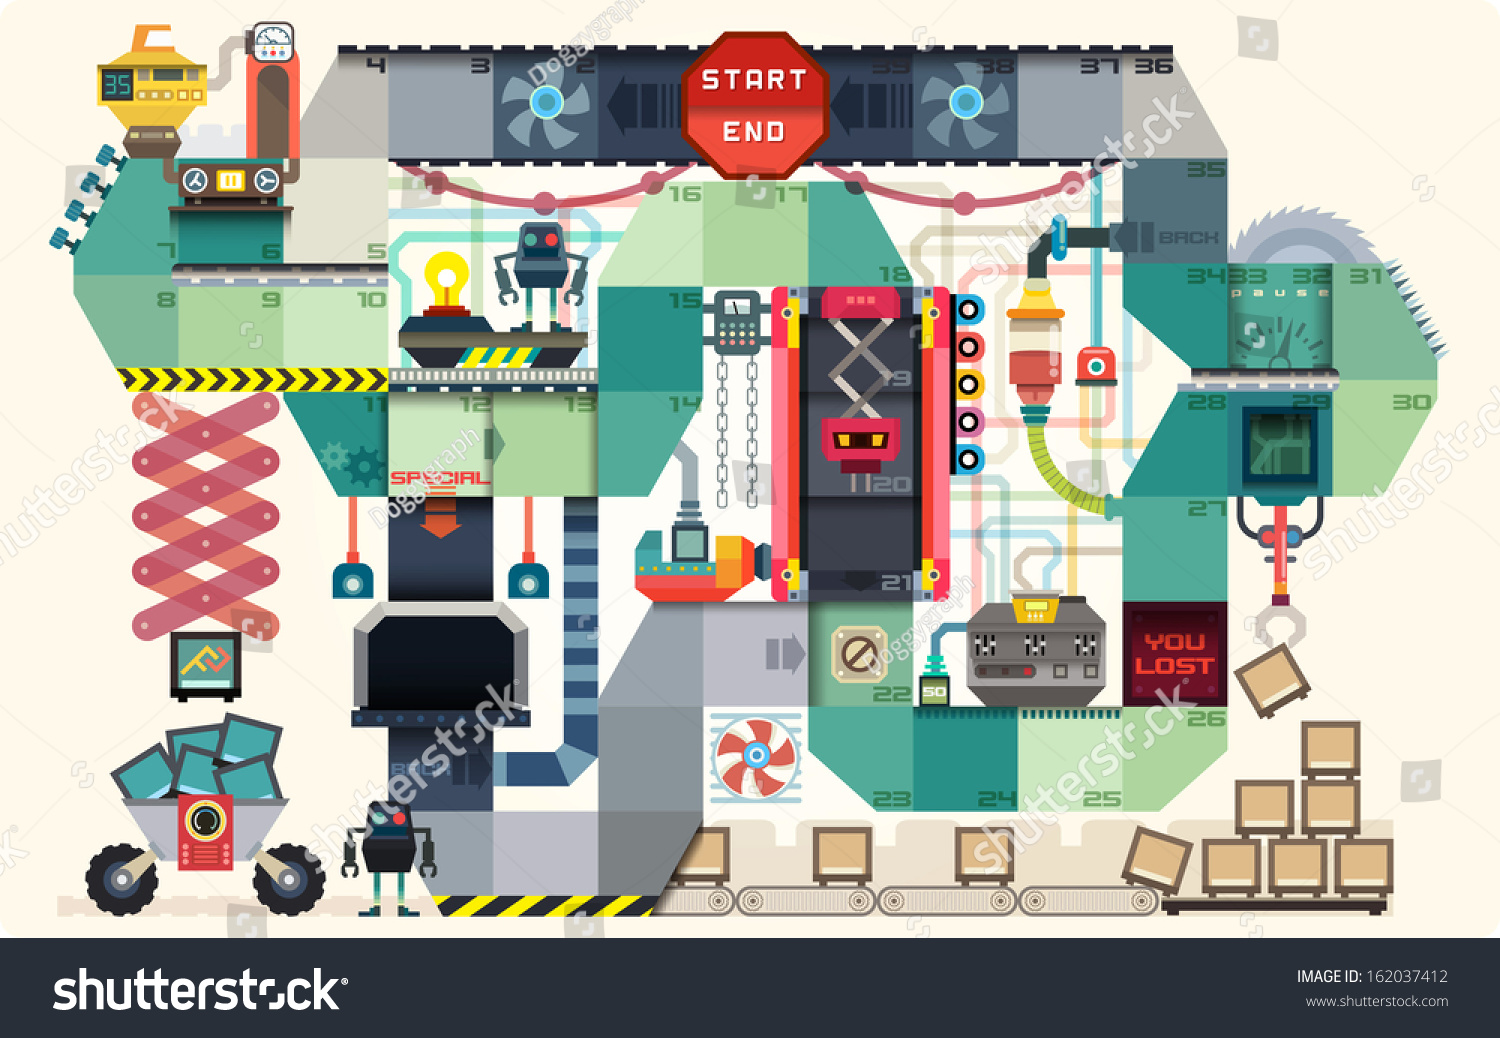 Robot Factory Board Game Kids Infographics Stock Vector 162037412 - Shutterstock